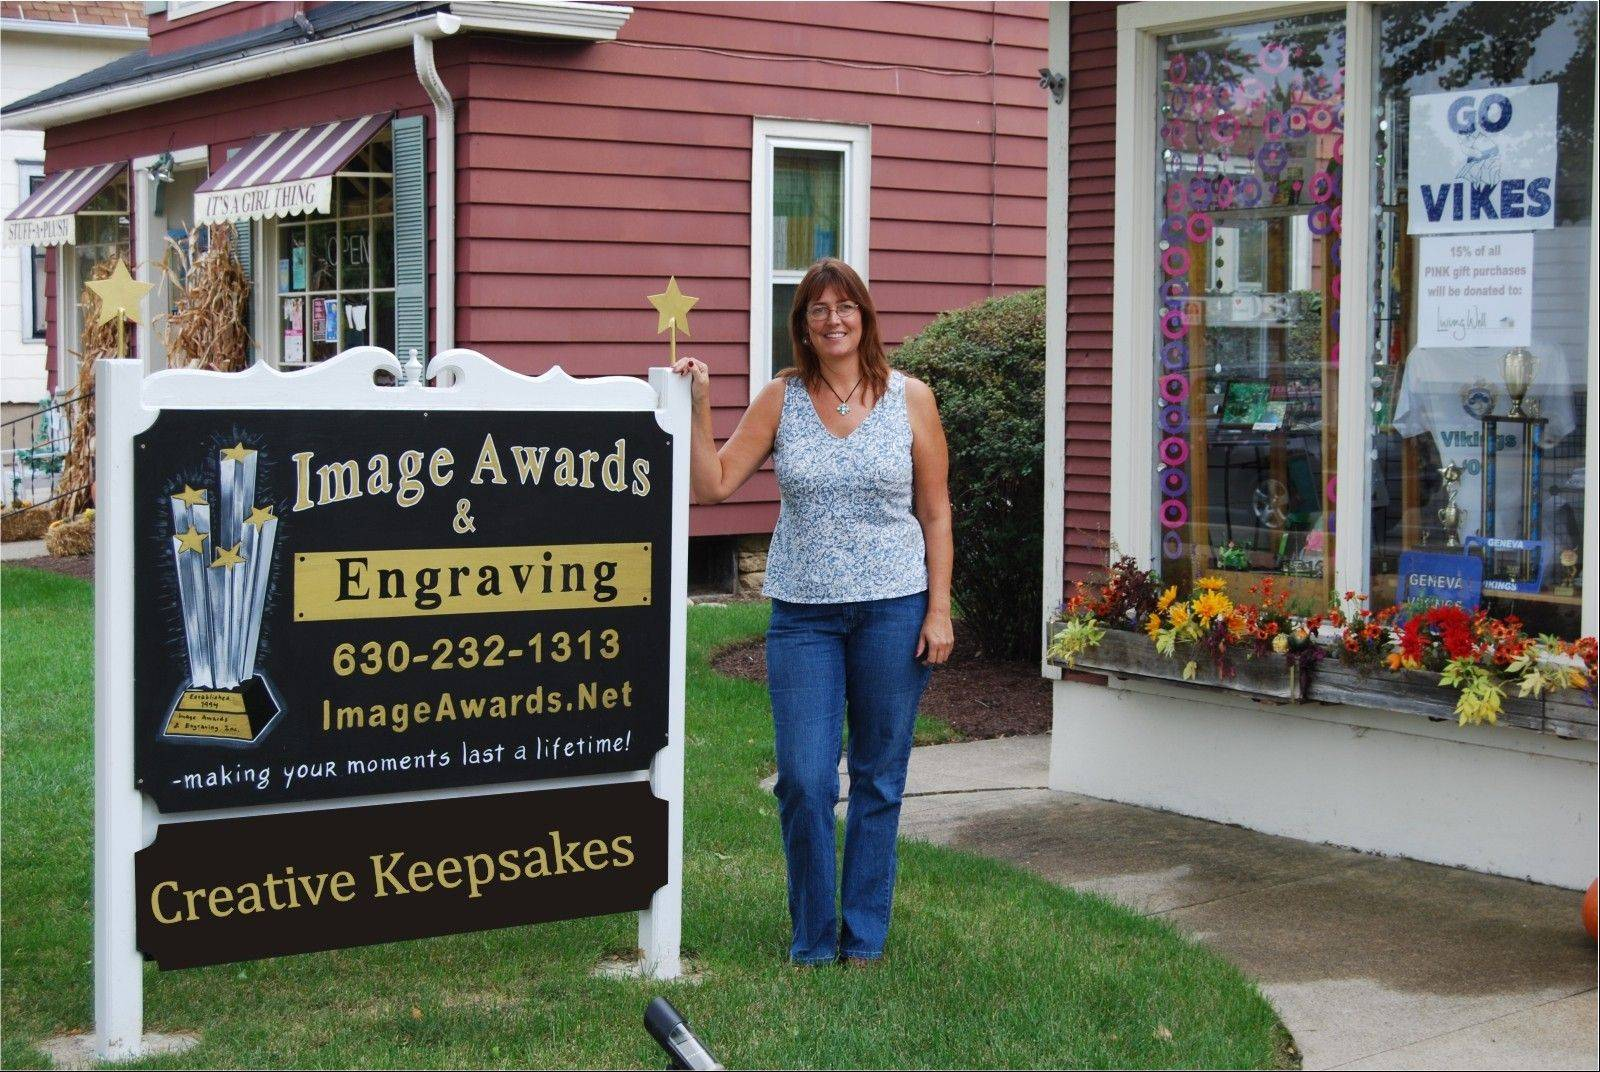 Patty Donahue, owner of Image Awards, Engraving & Creative Keepsakes Inc. in Geneva.